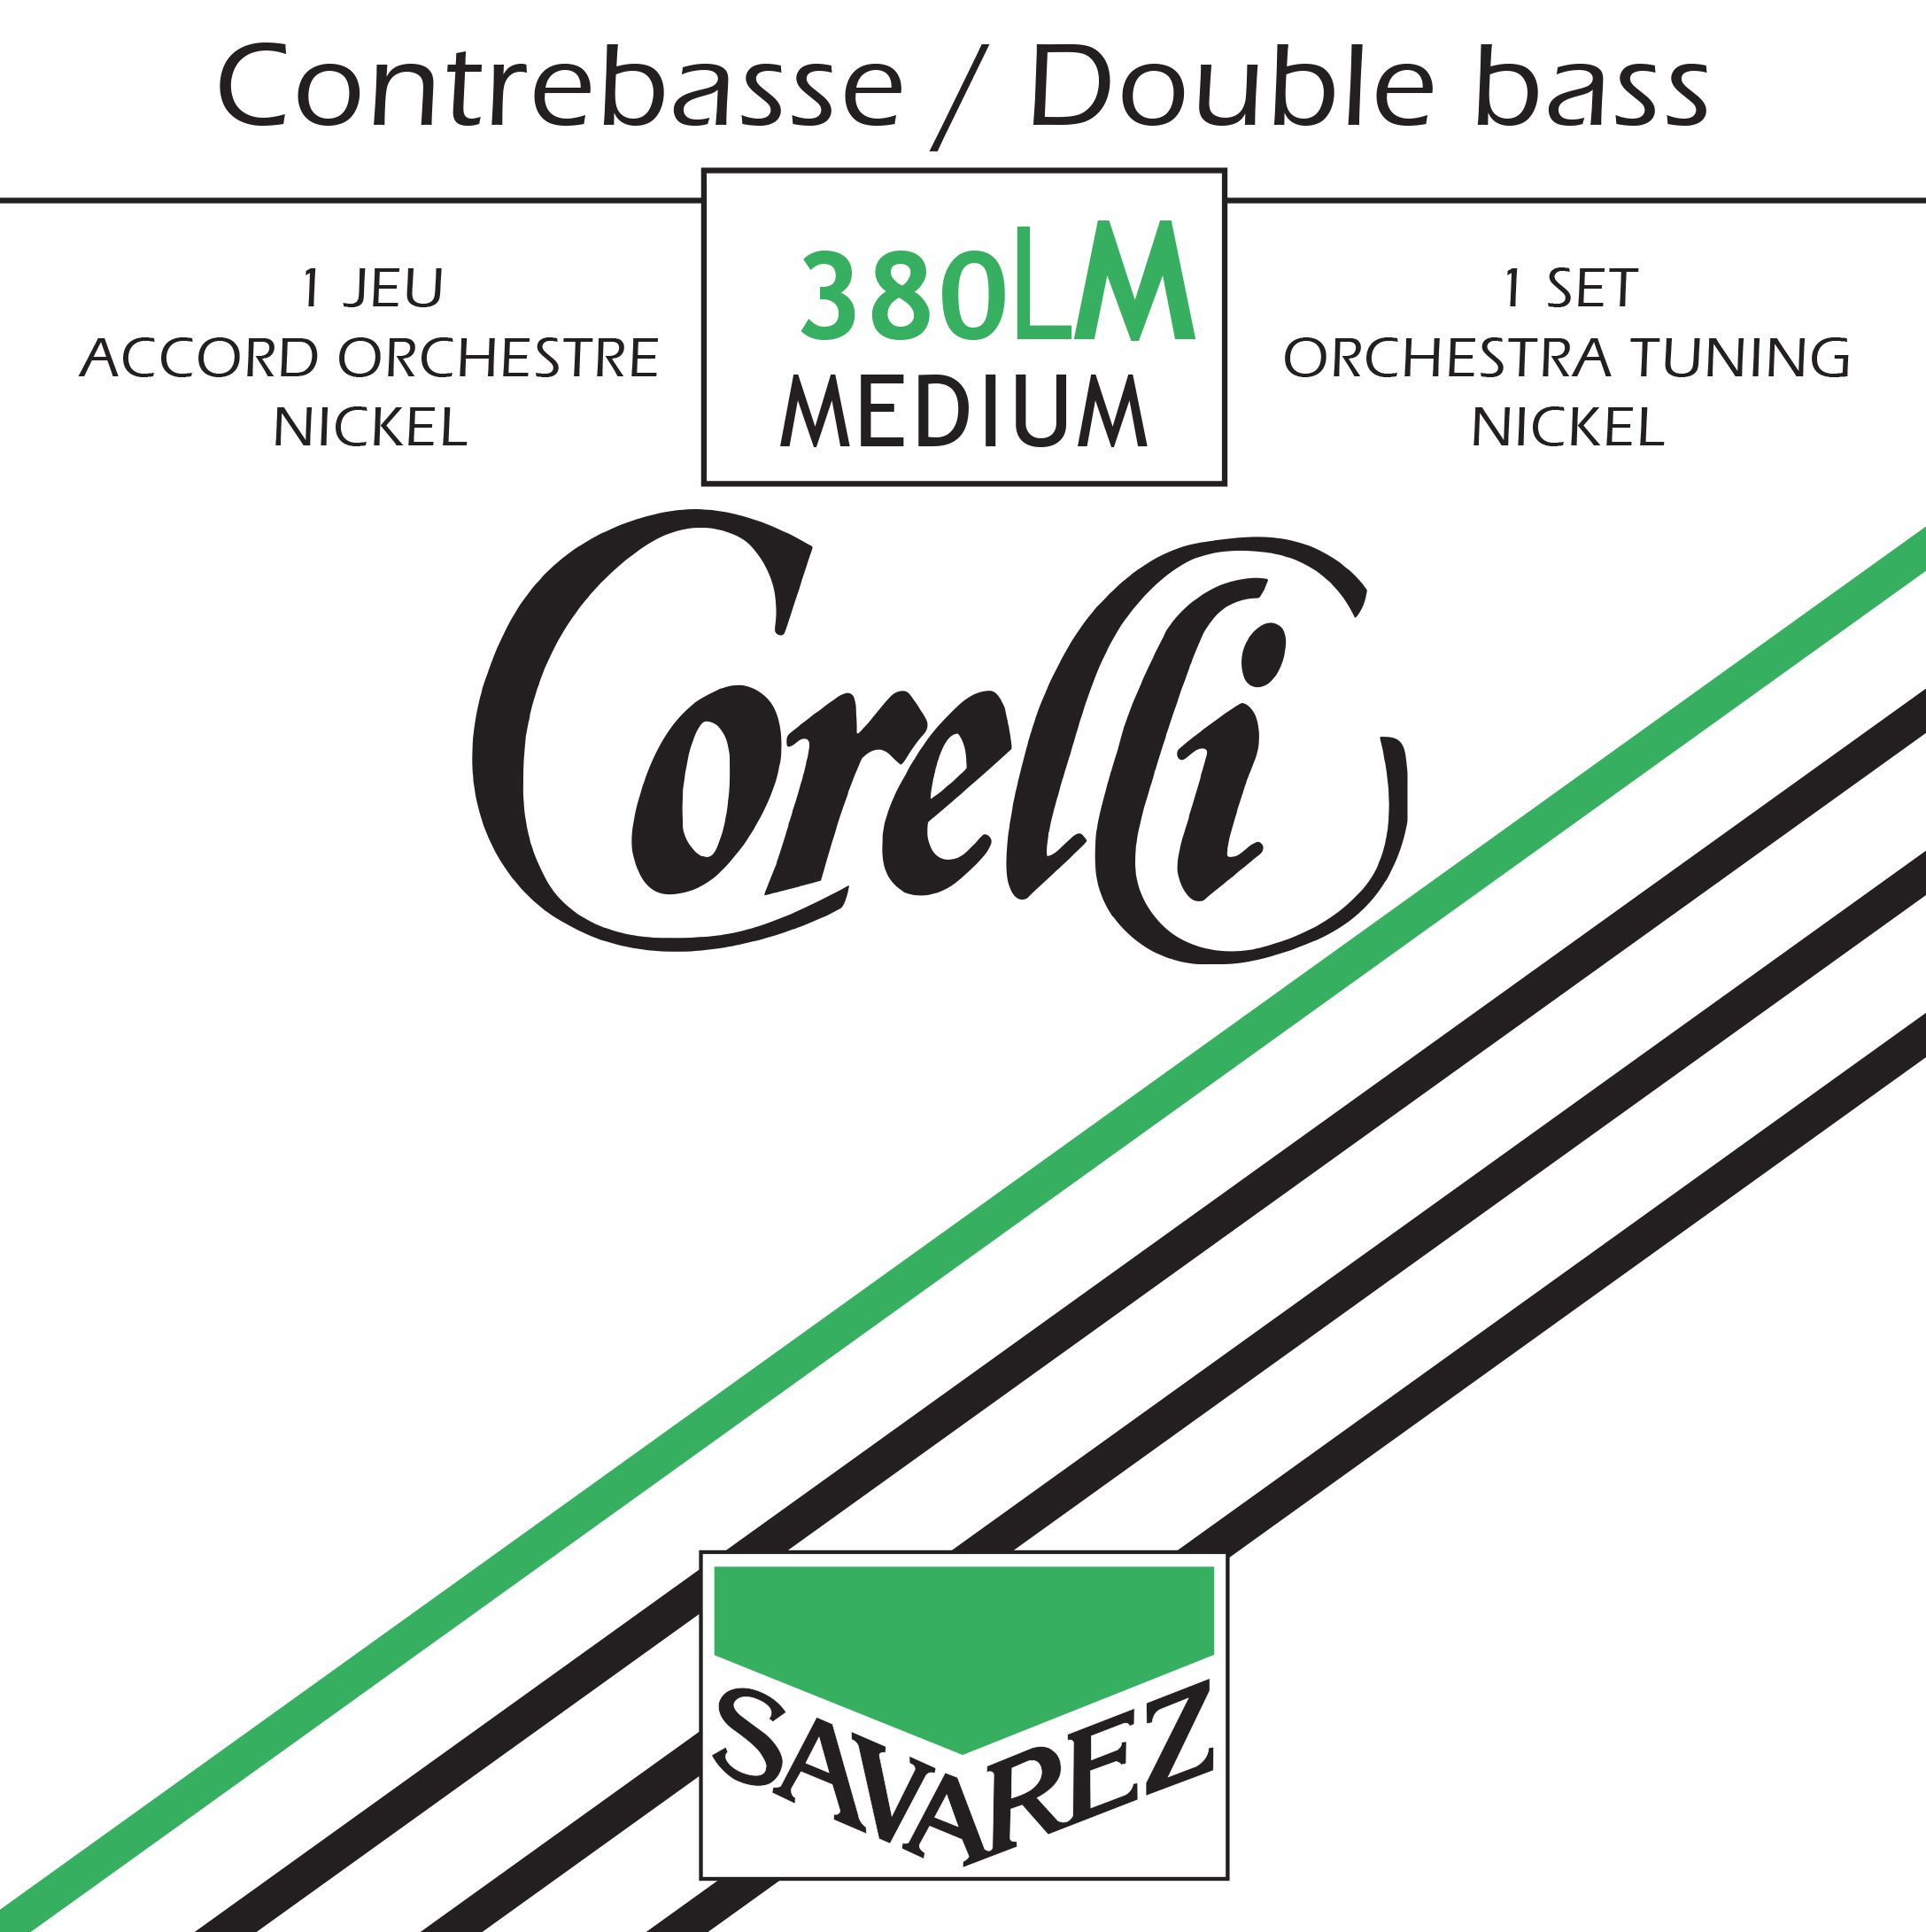 CORELLI TENSION MEDIUM 380LM JEU NICKEL ORCHESTRE